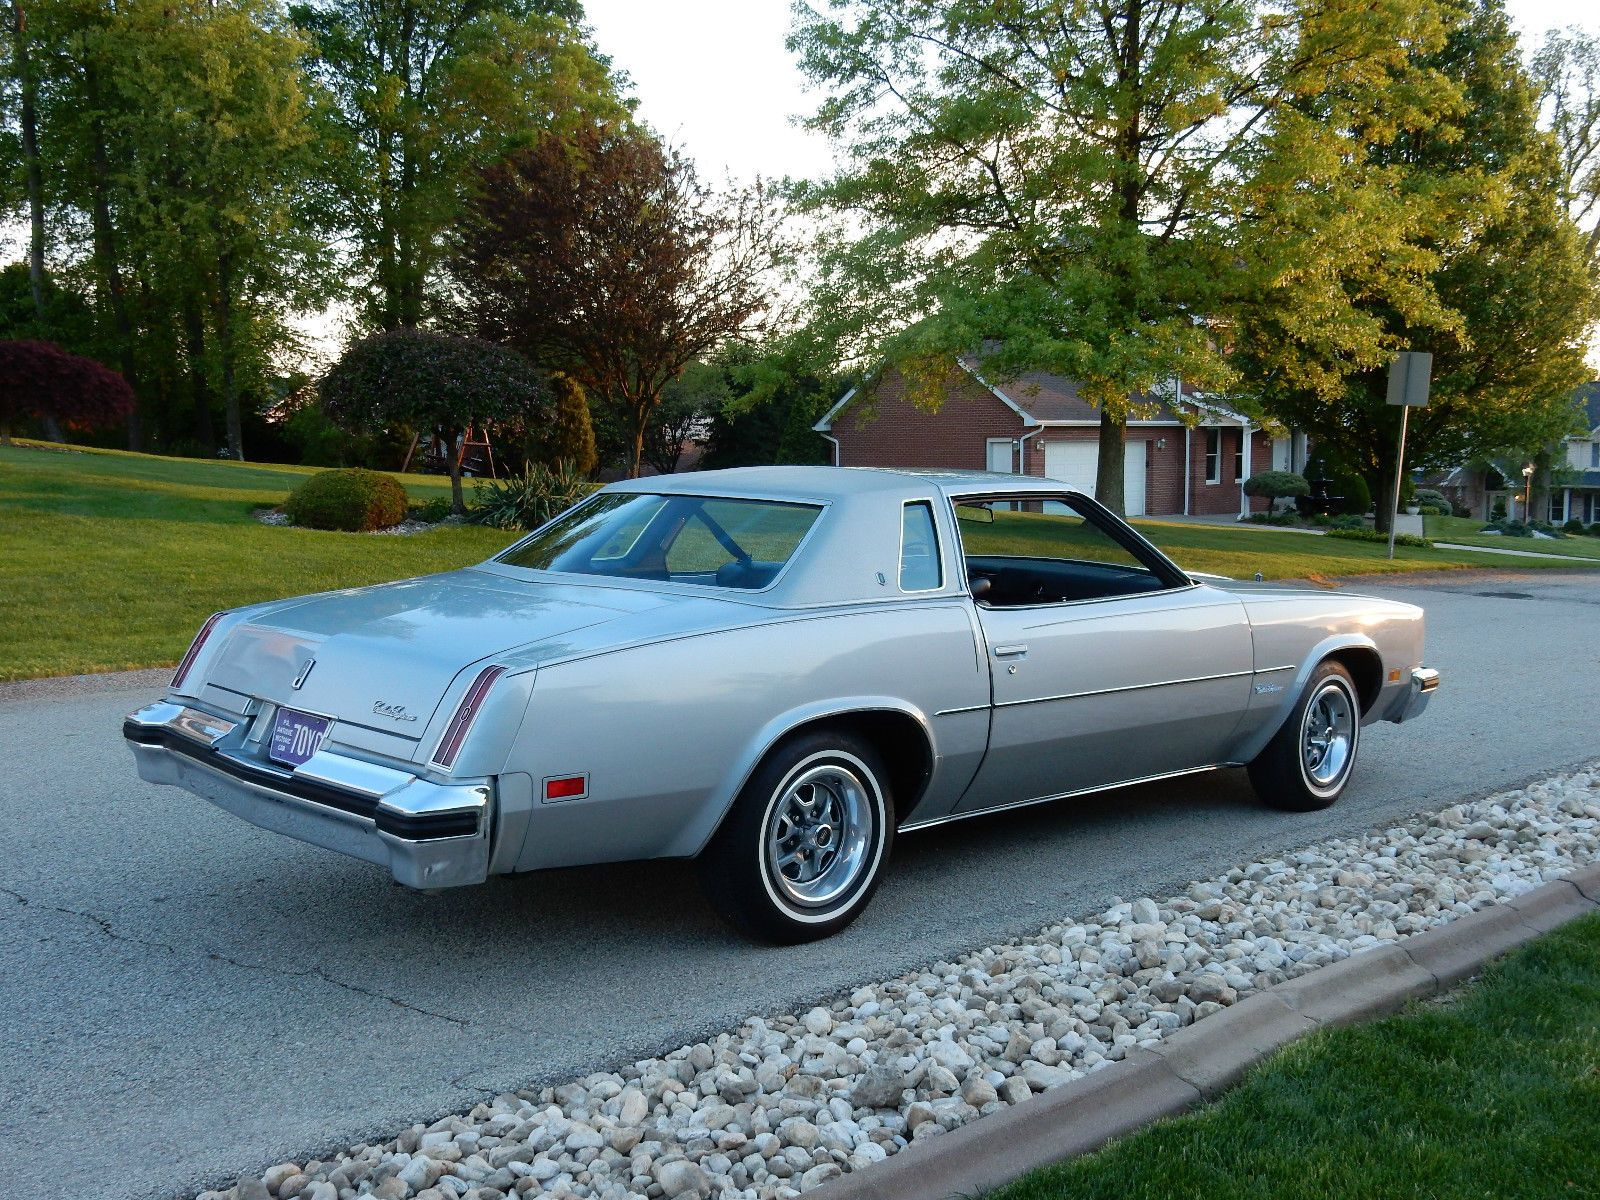 Silver 1976 cutlass supreme